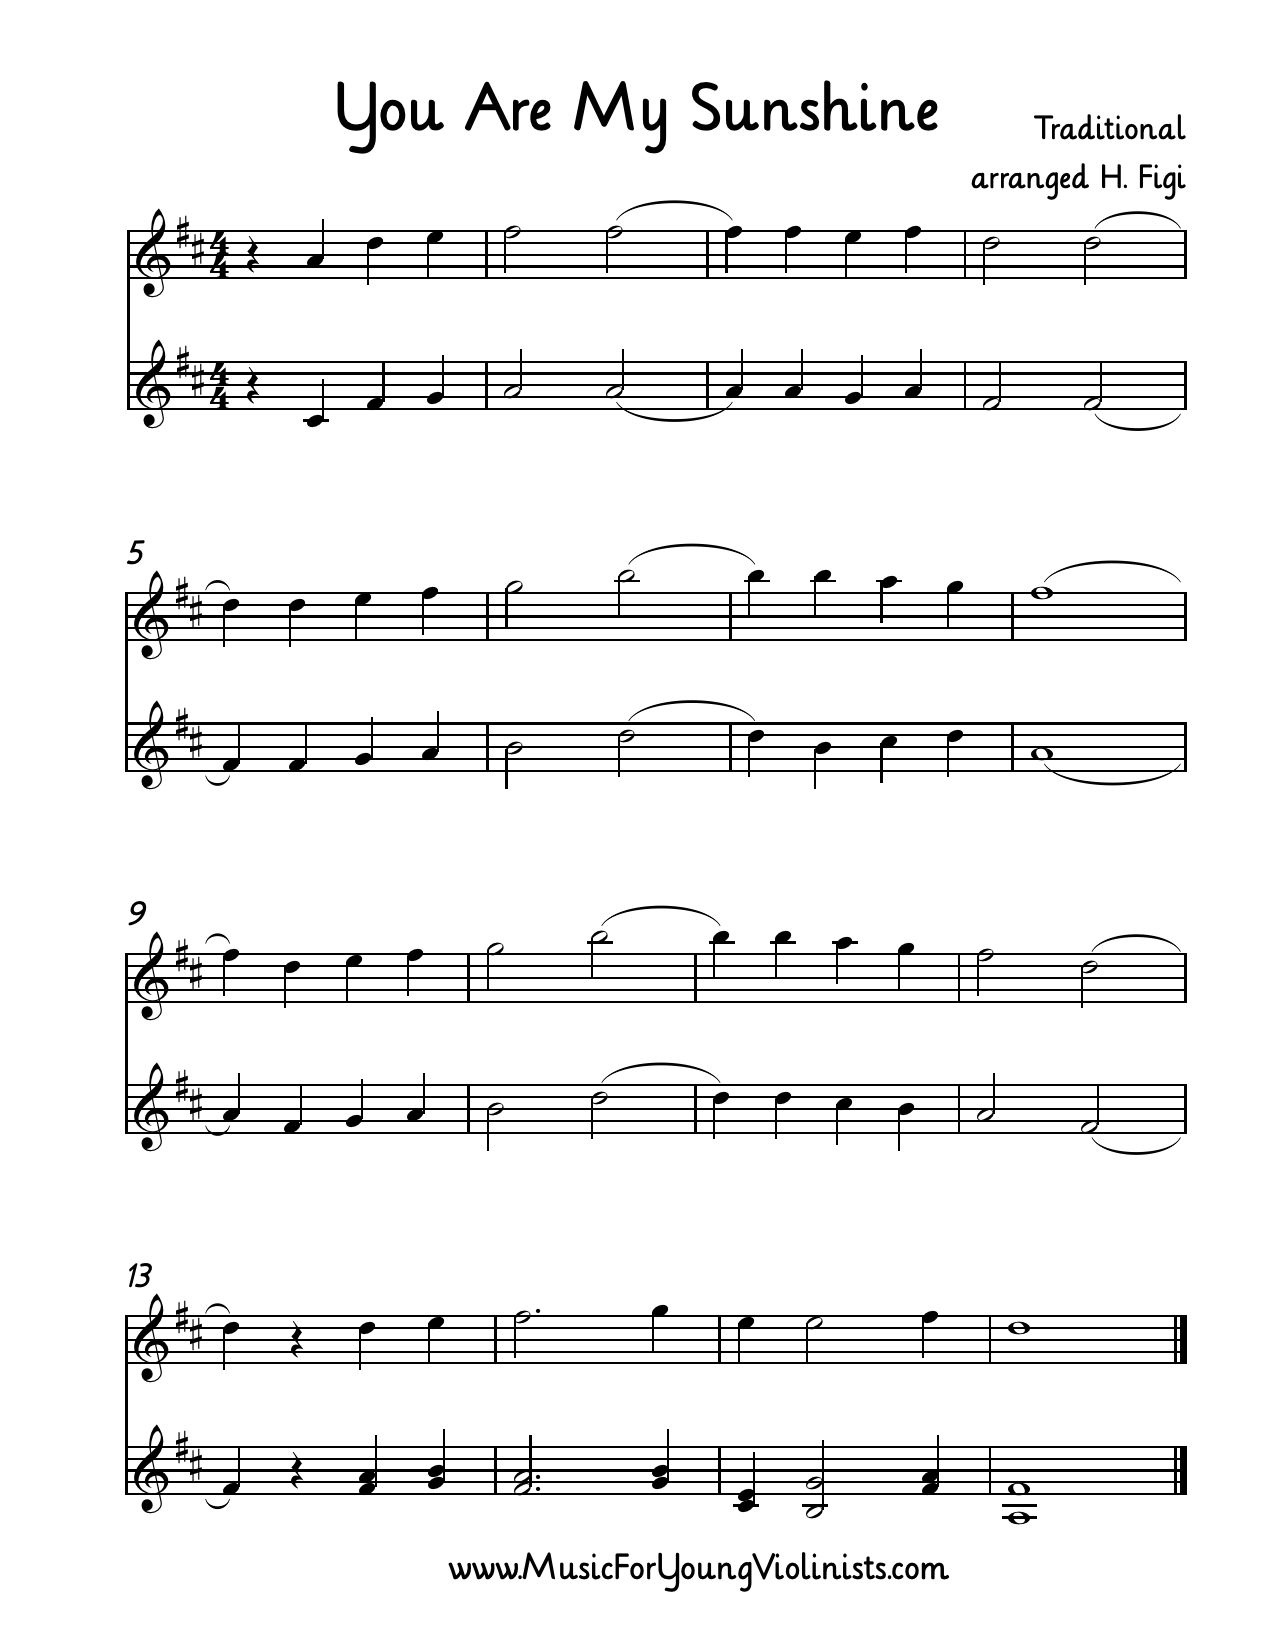 Violin Sheet Music: You Are My Sunshine Arranged For 2 Violins - Free Printable Piano Sheet Music For You Are My Sunshine